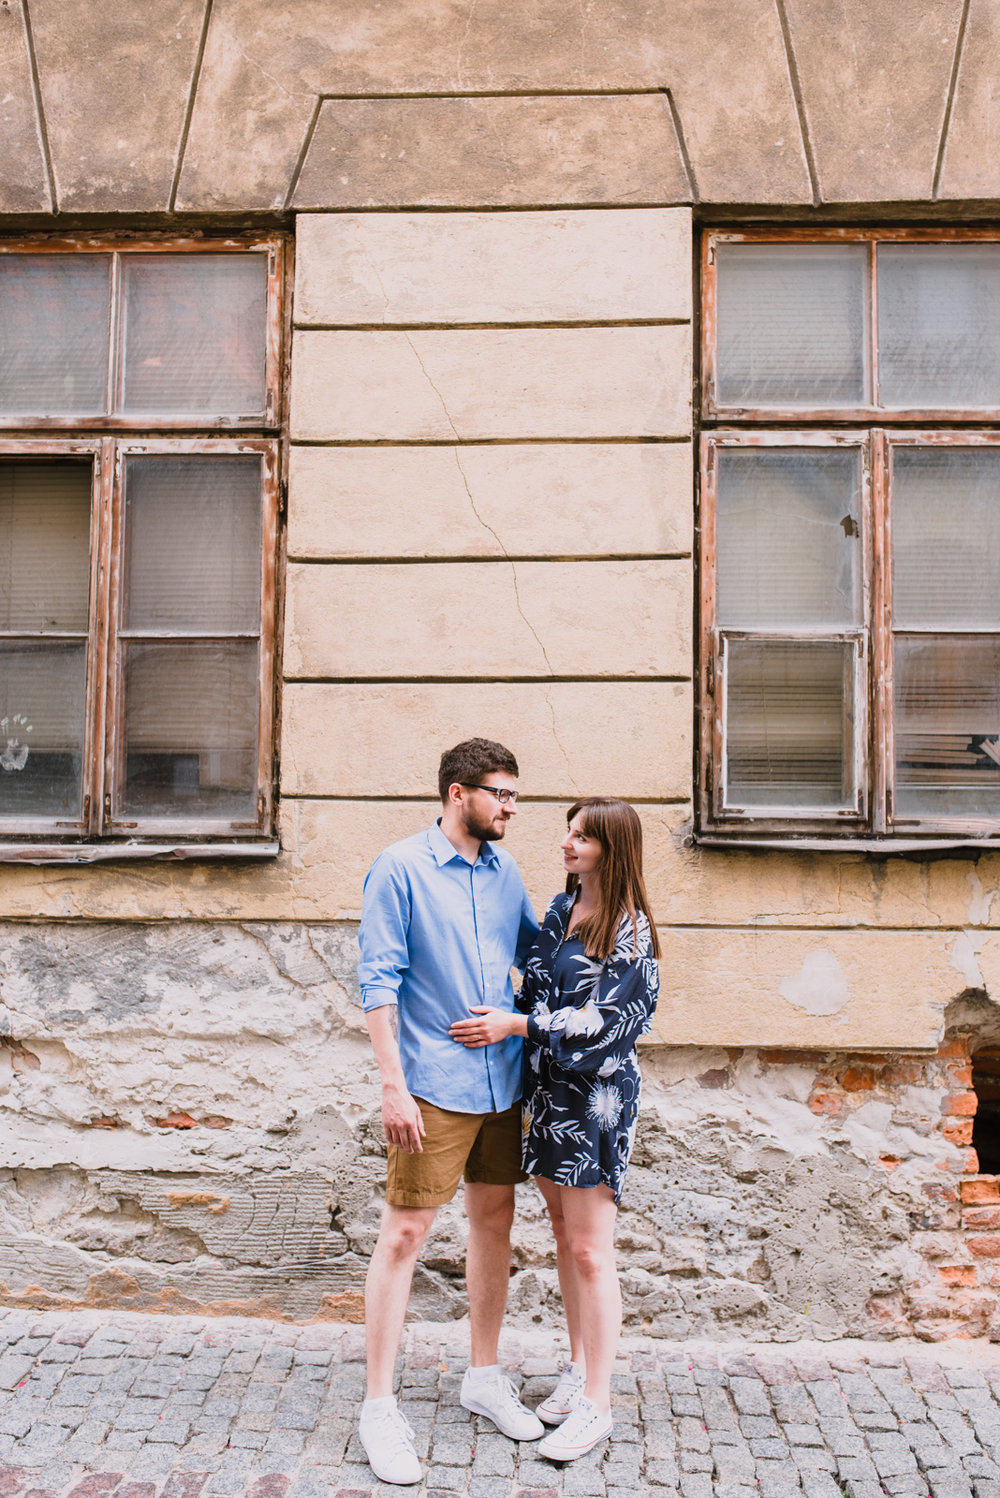 engagement shoot in Lublin Poland, summer engagement shoot in the city, old town engagement photos taken by Hello, Sugar Destination Wedding Photography-3.jpg